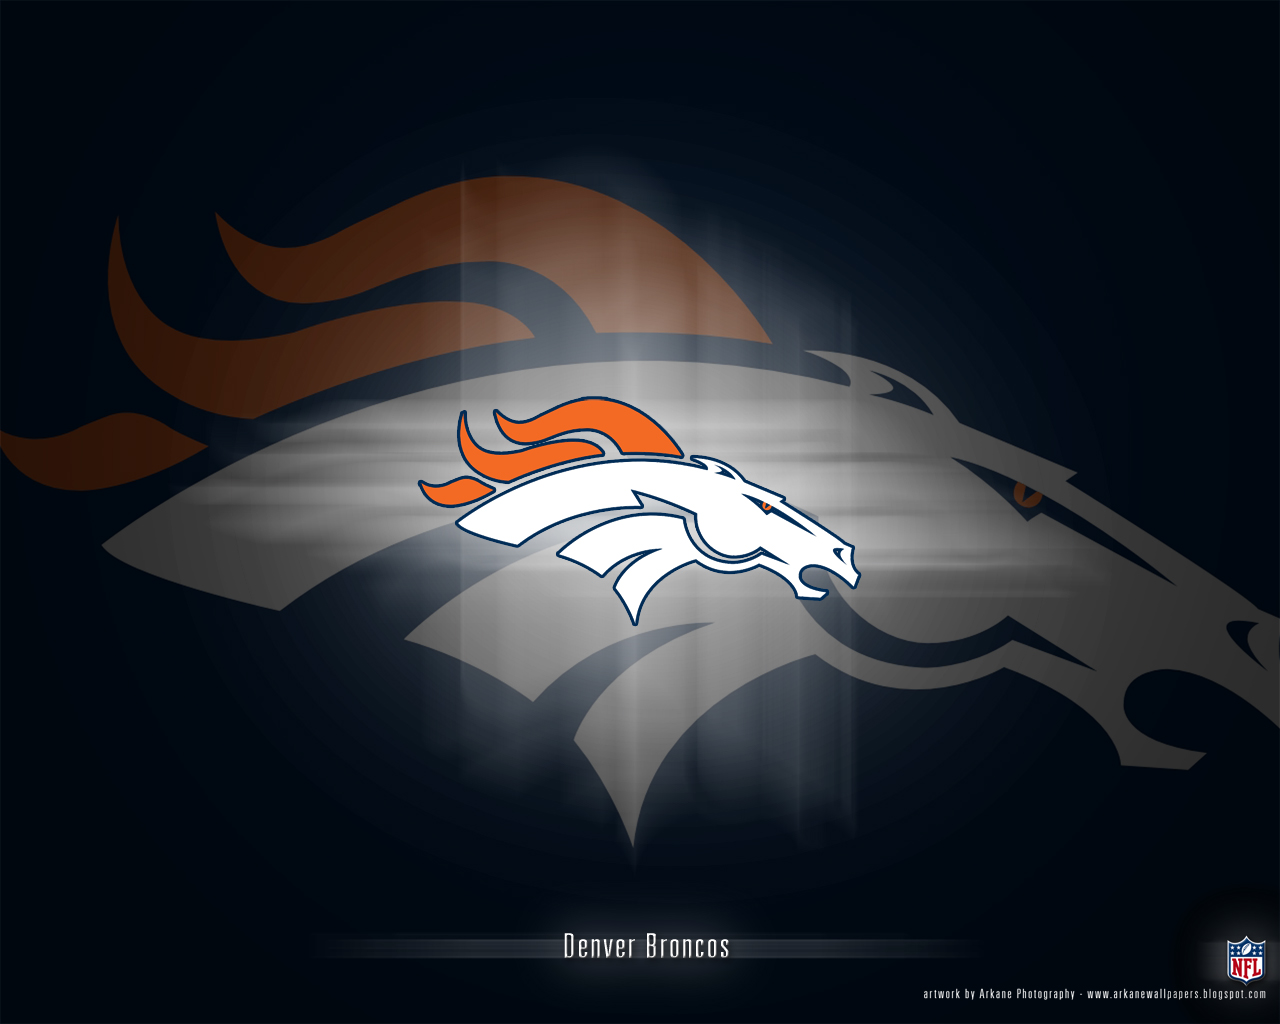 Denver Broncos Wallpaper | Free | Download